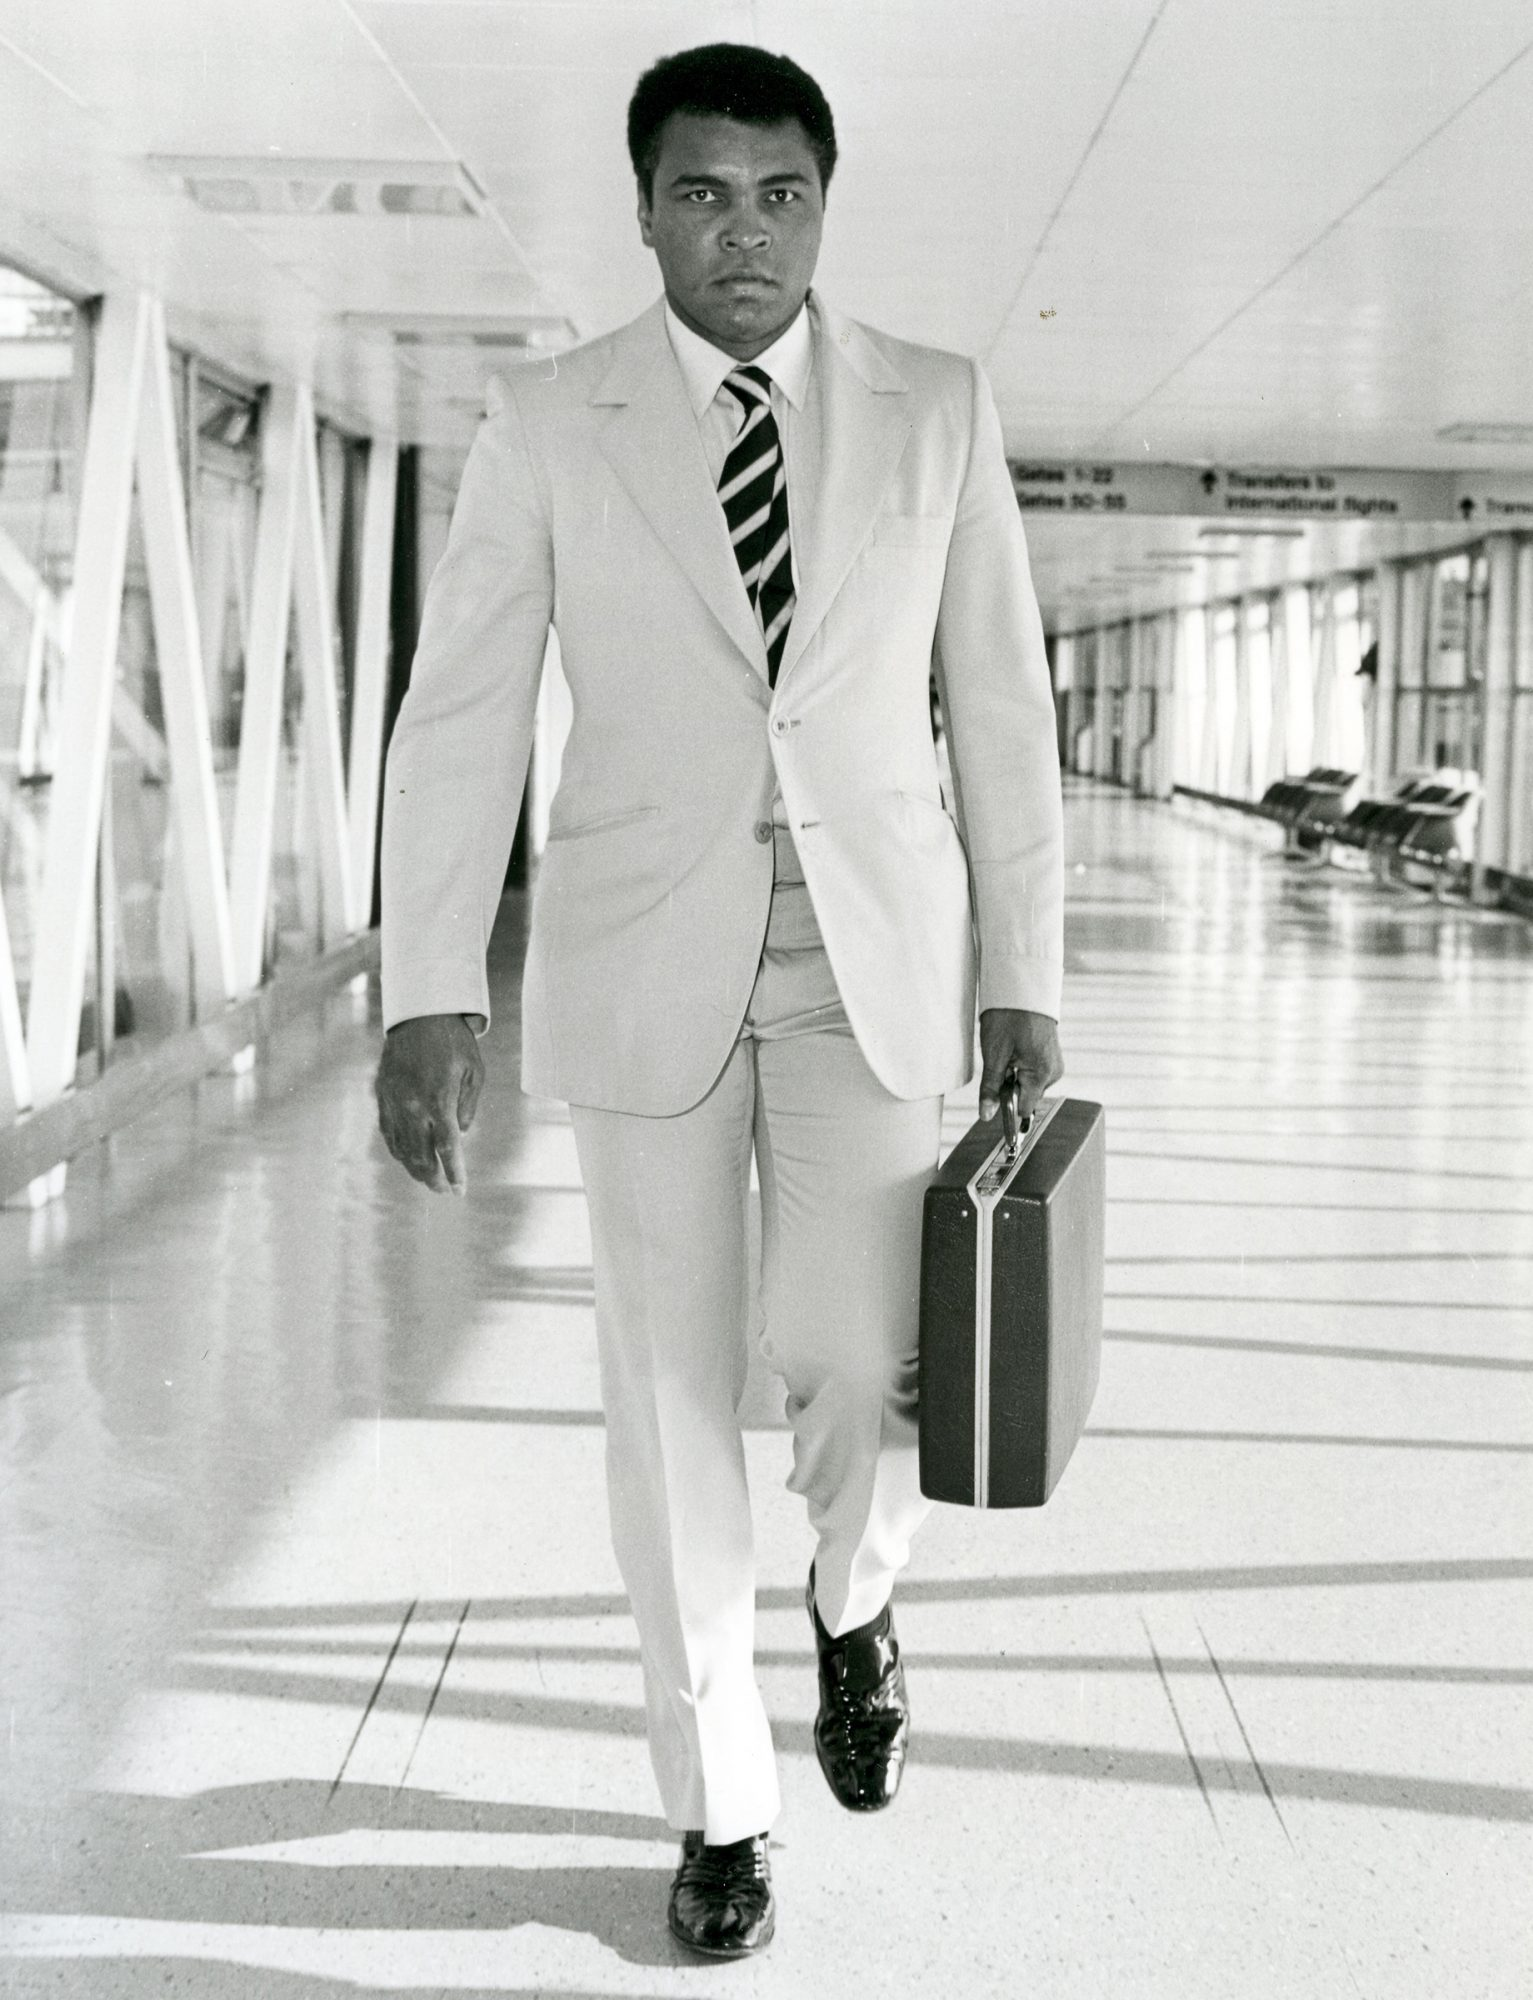 MUHAMMAD ALI (Casius Clay) American boxer arriving at Heathrow airport about 1967